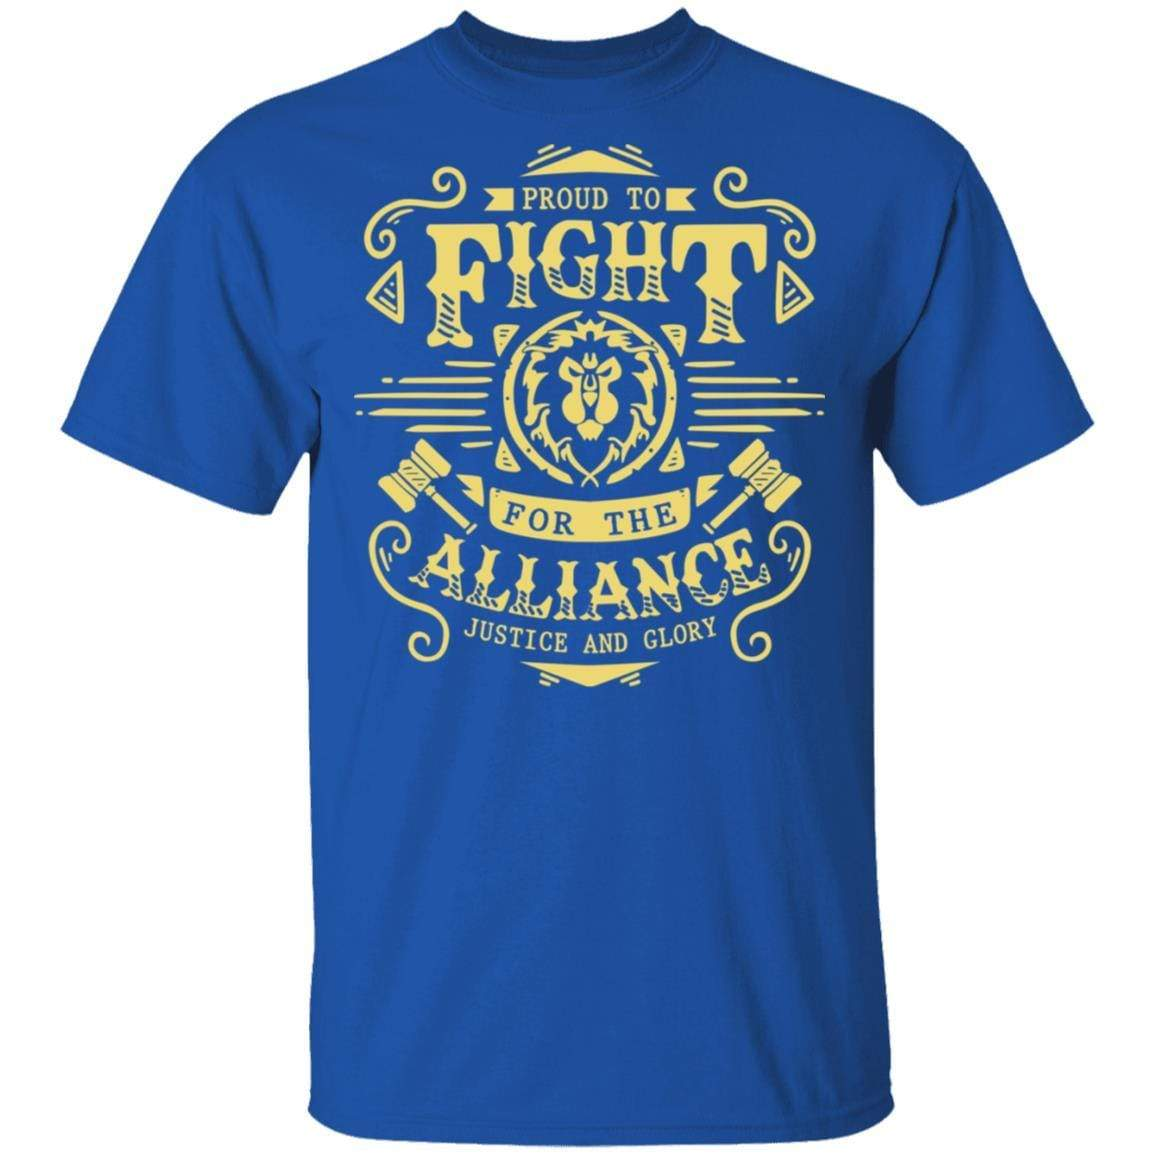 Proud To Fight For The Alliance Justice And Glory T-Shirts, Hoodies 1049-9971-88445022-48286 - Tee Ript